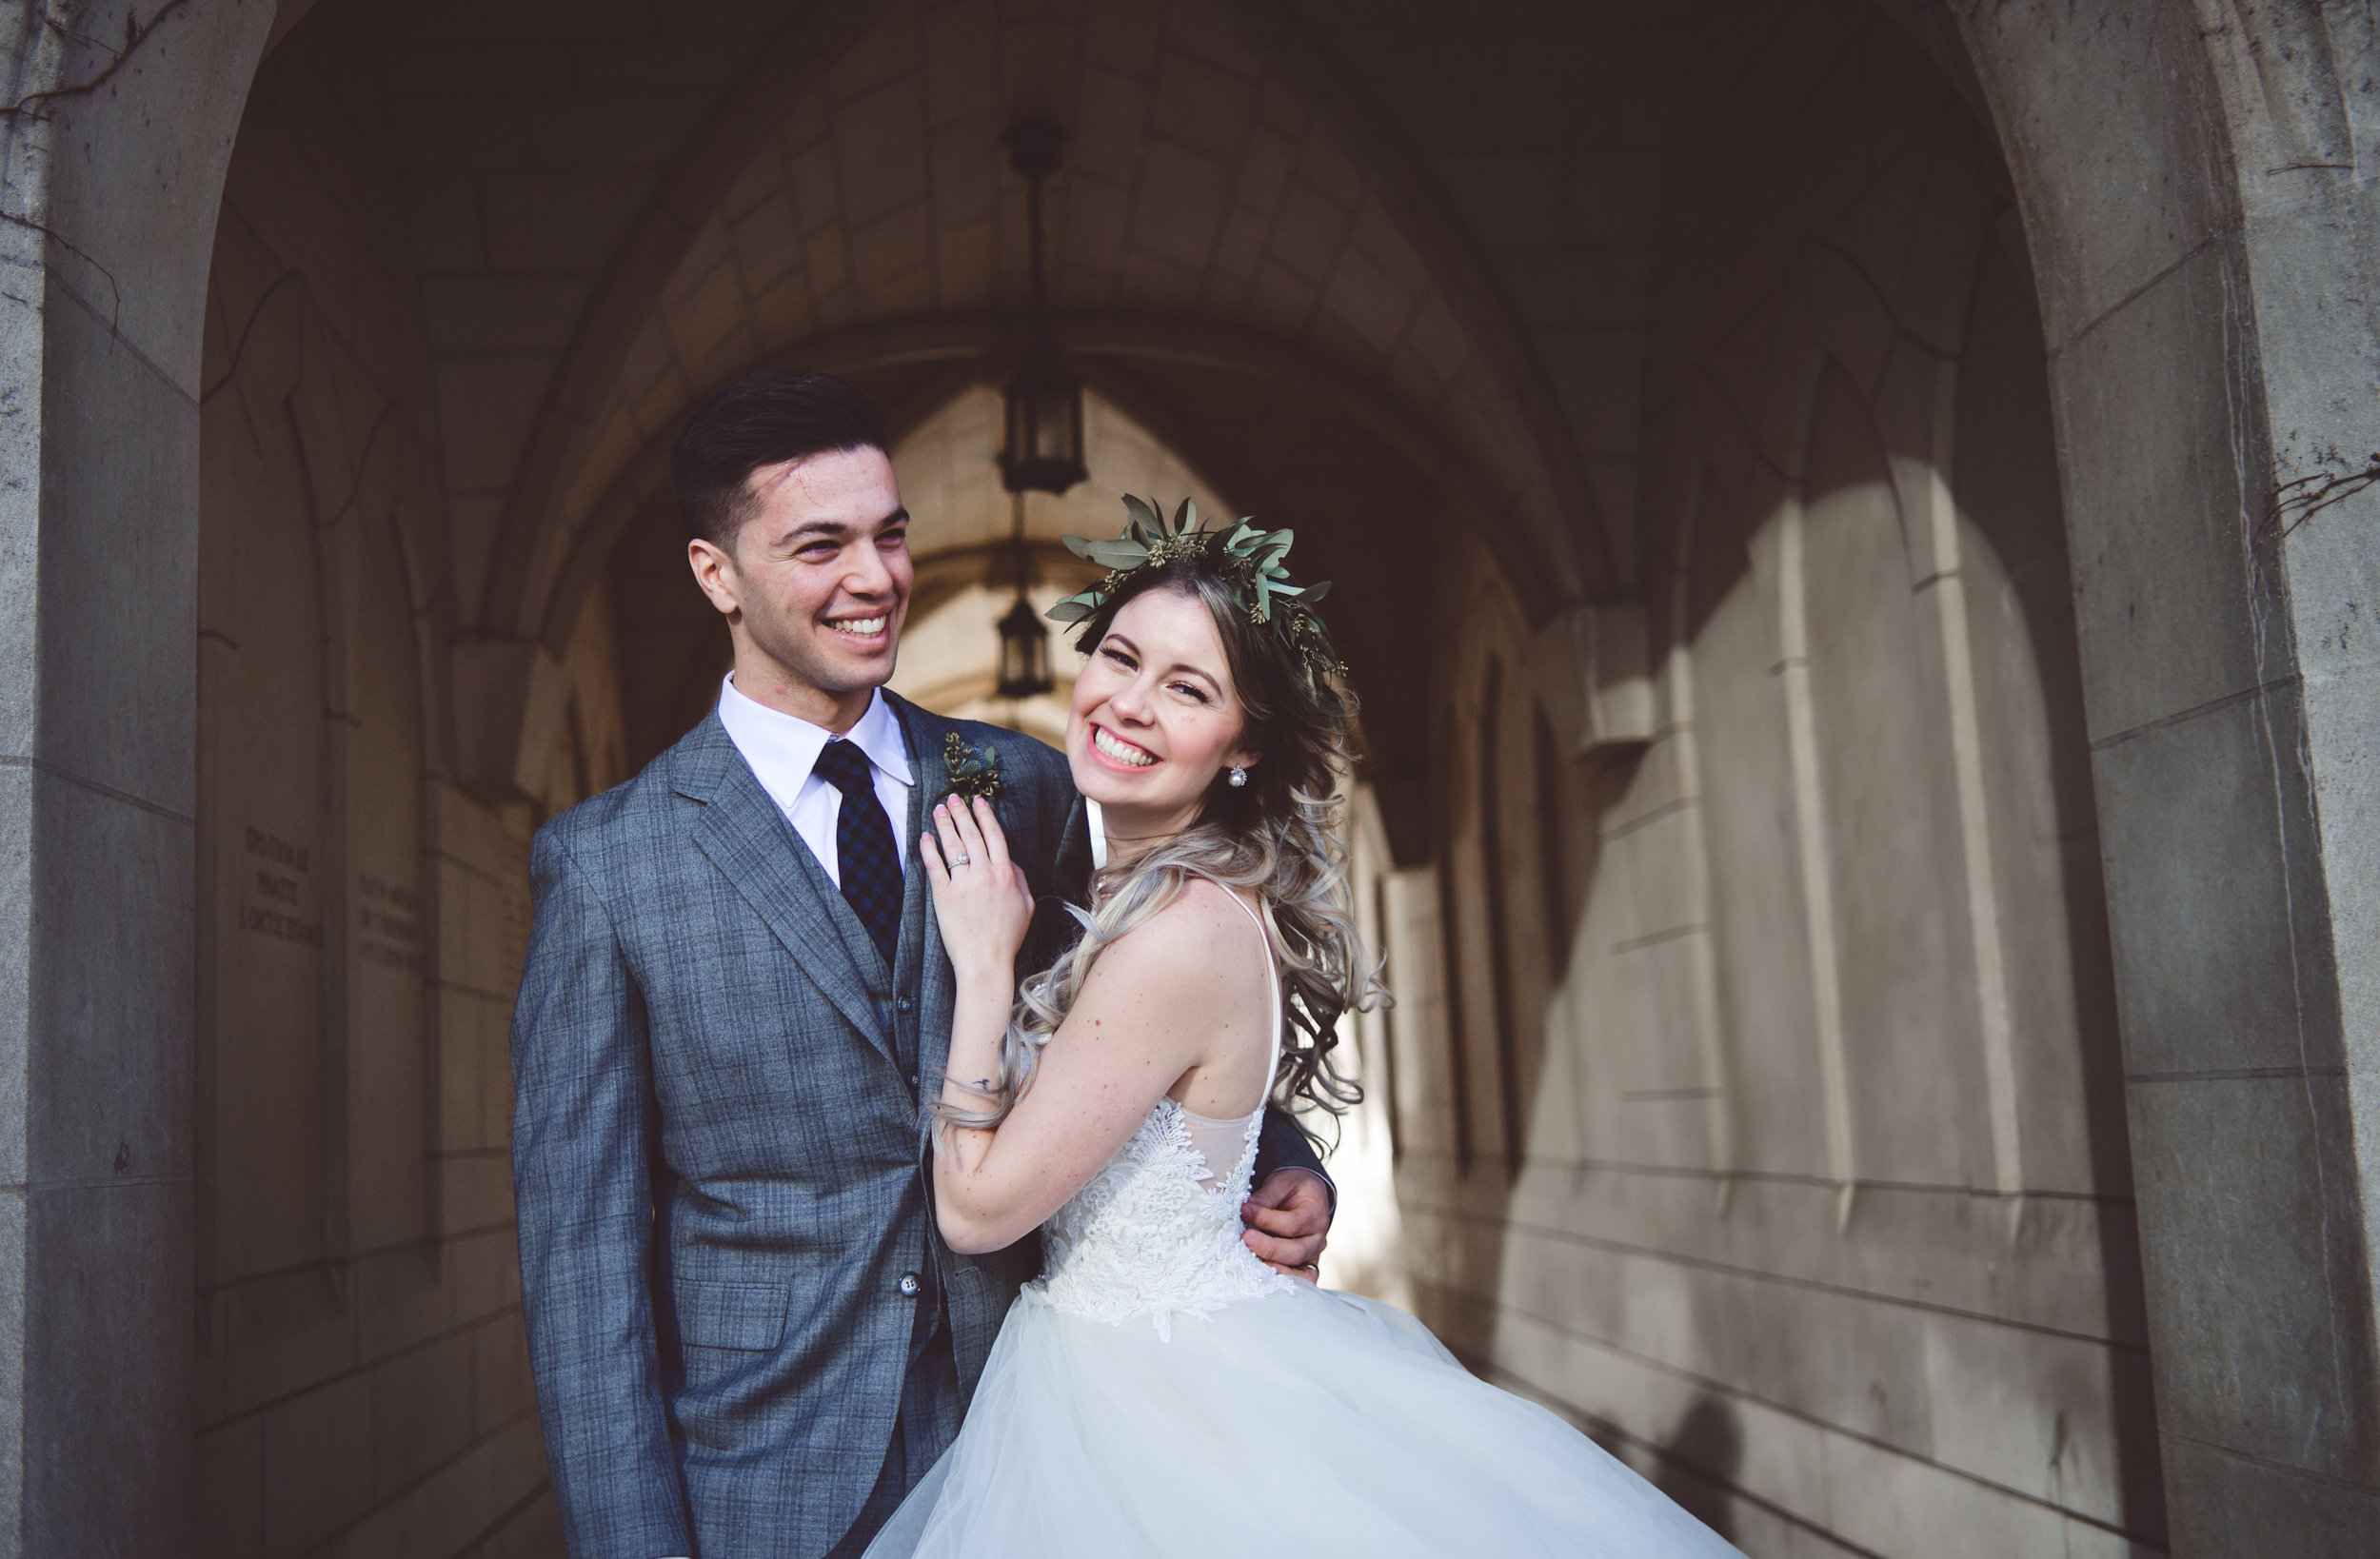 N + R - Bride + Groom-3145.jpg